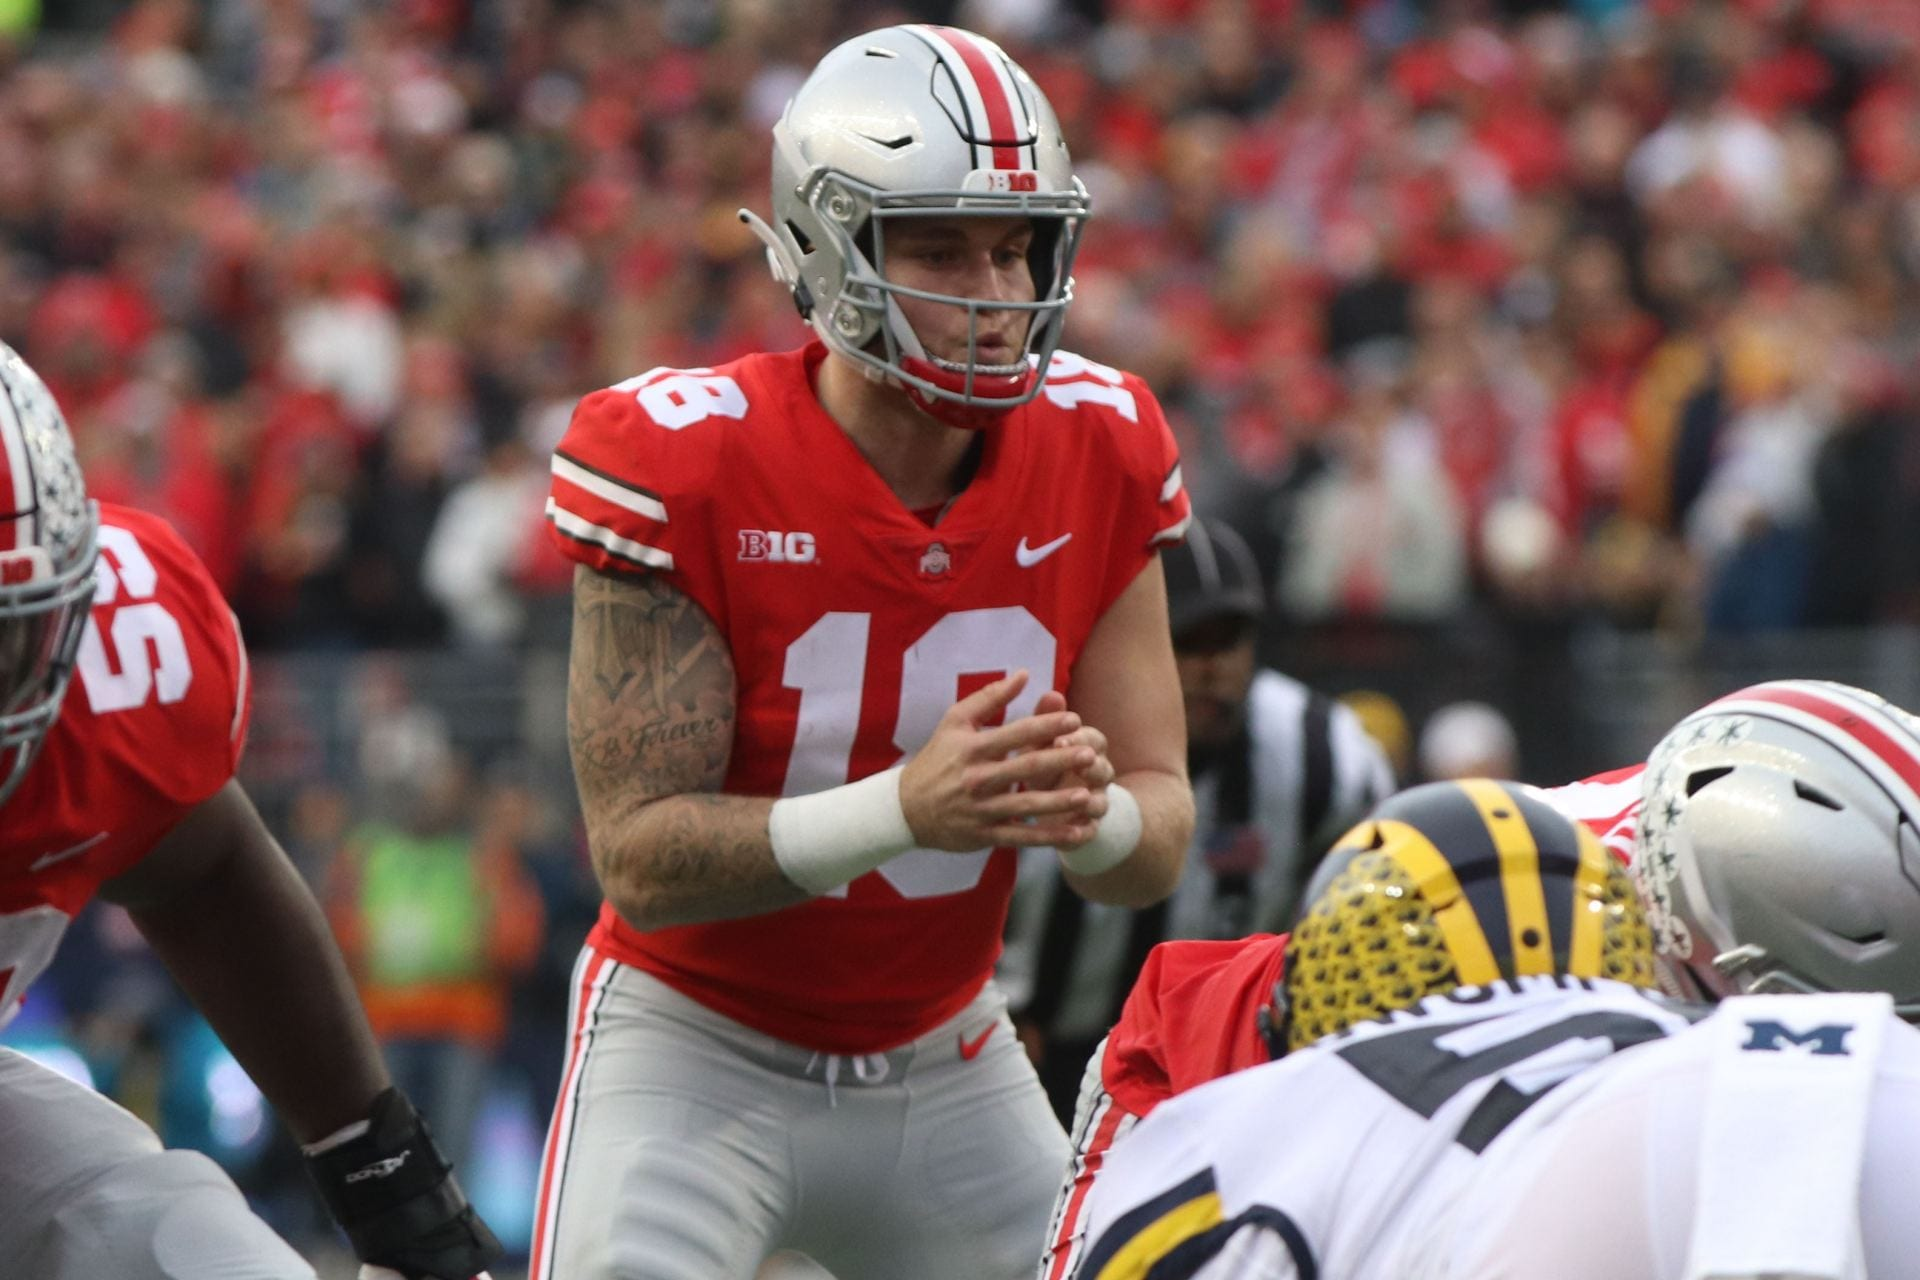 Football: Tate Martell to transfer to University of Miami ...